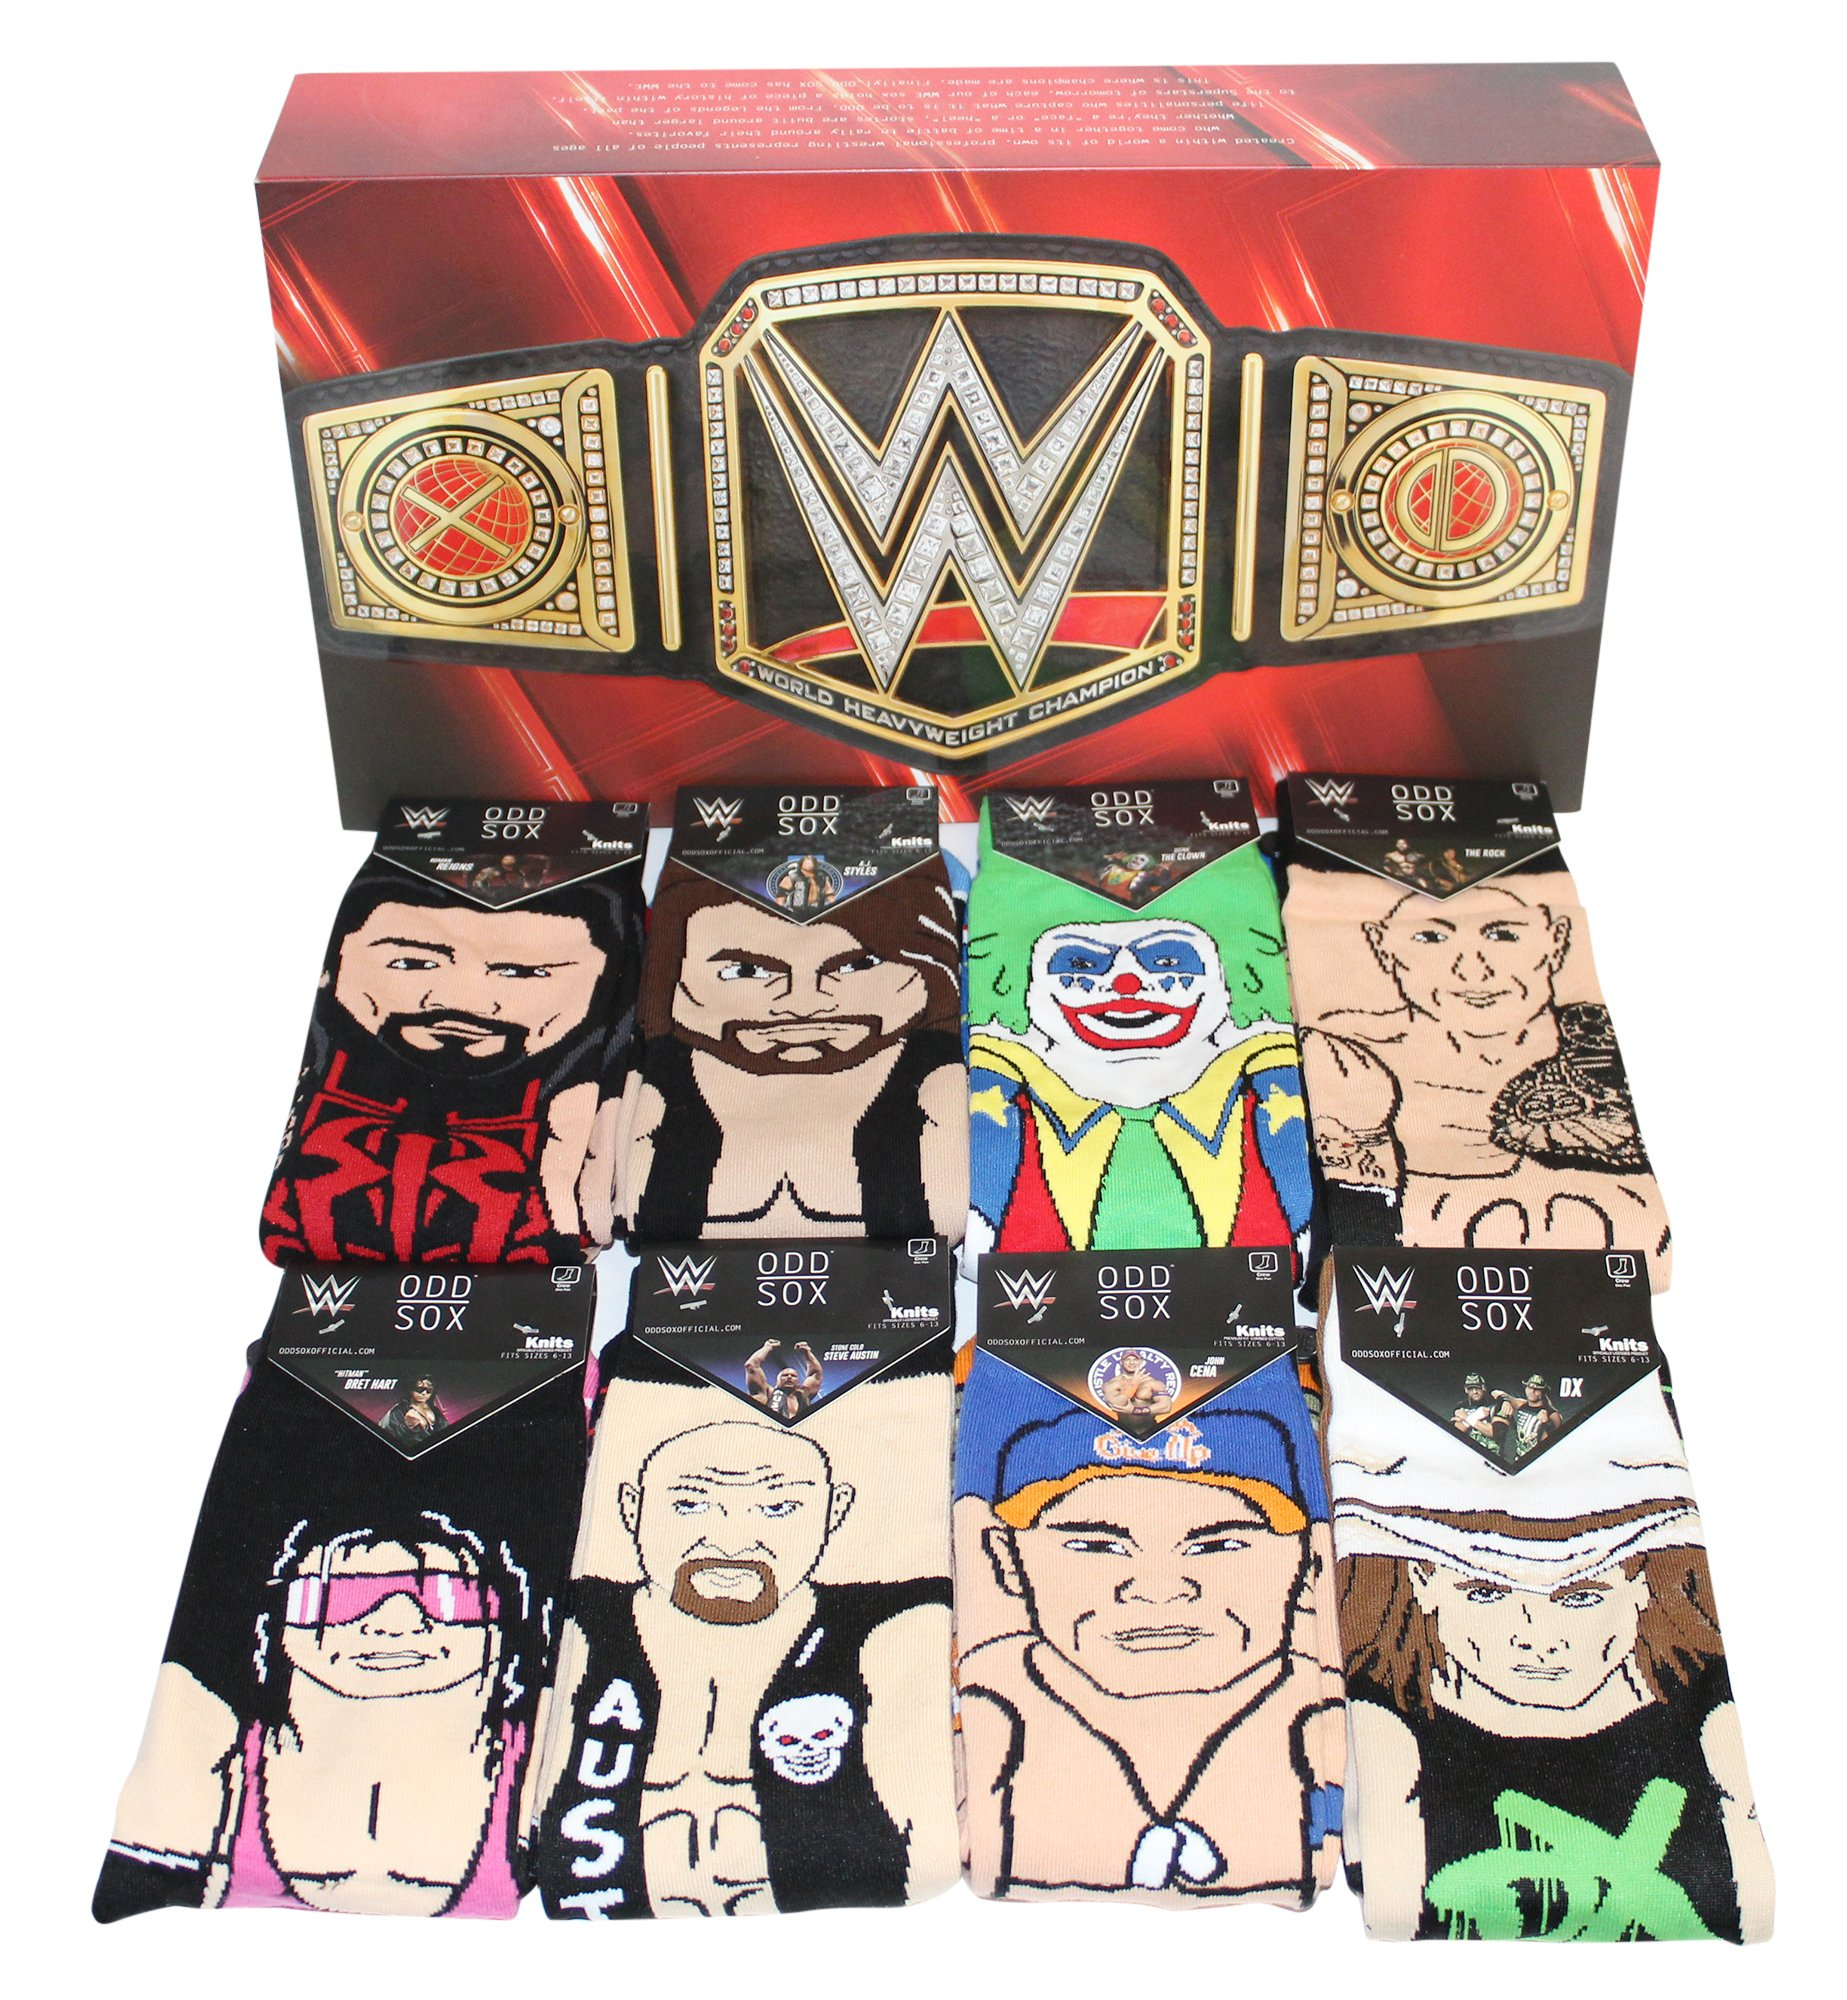 Odd Sox Limited Edition WWE Legends Gift Box Set 360 Knit Crew Sock (8-Pair) by Odd Sox (Image #1)